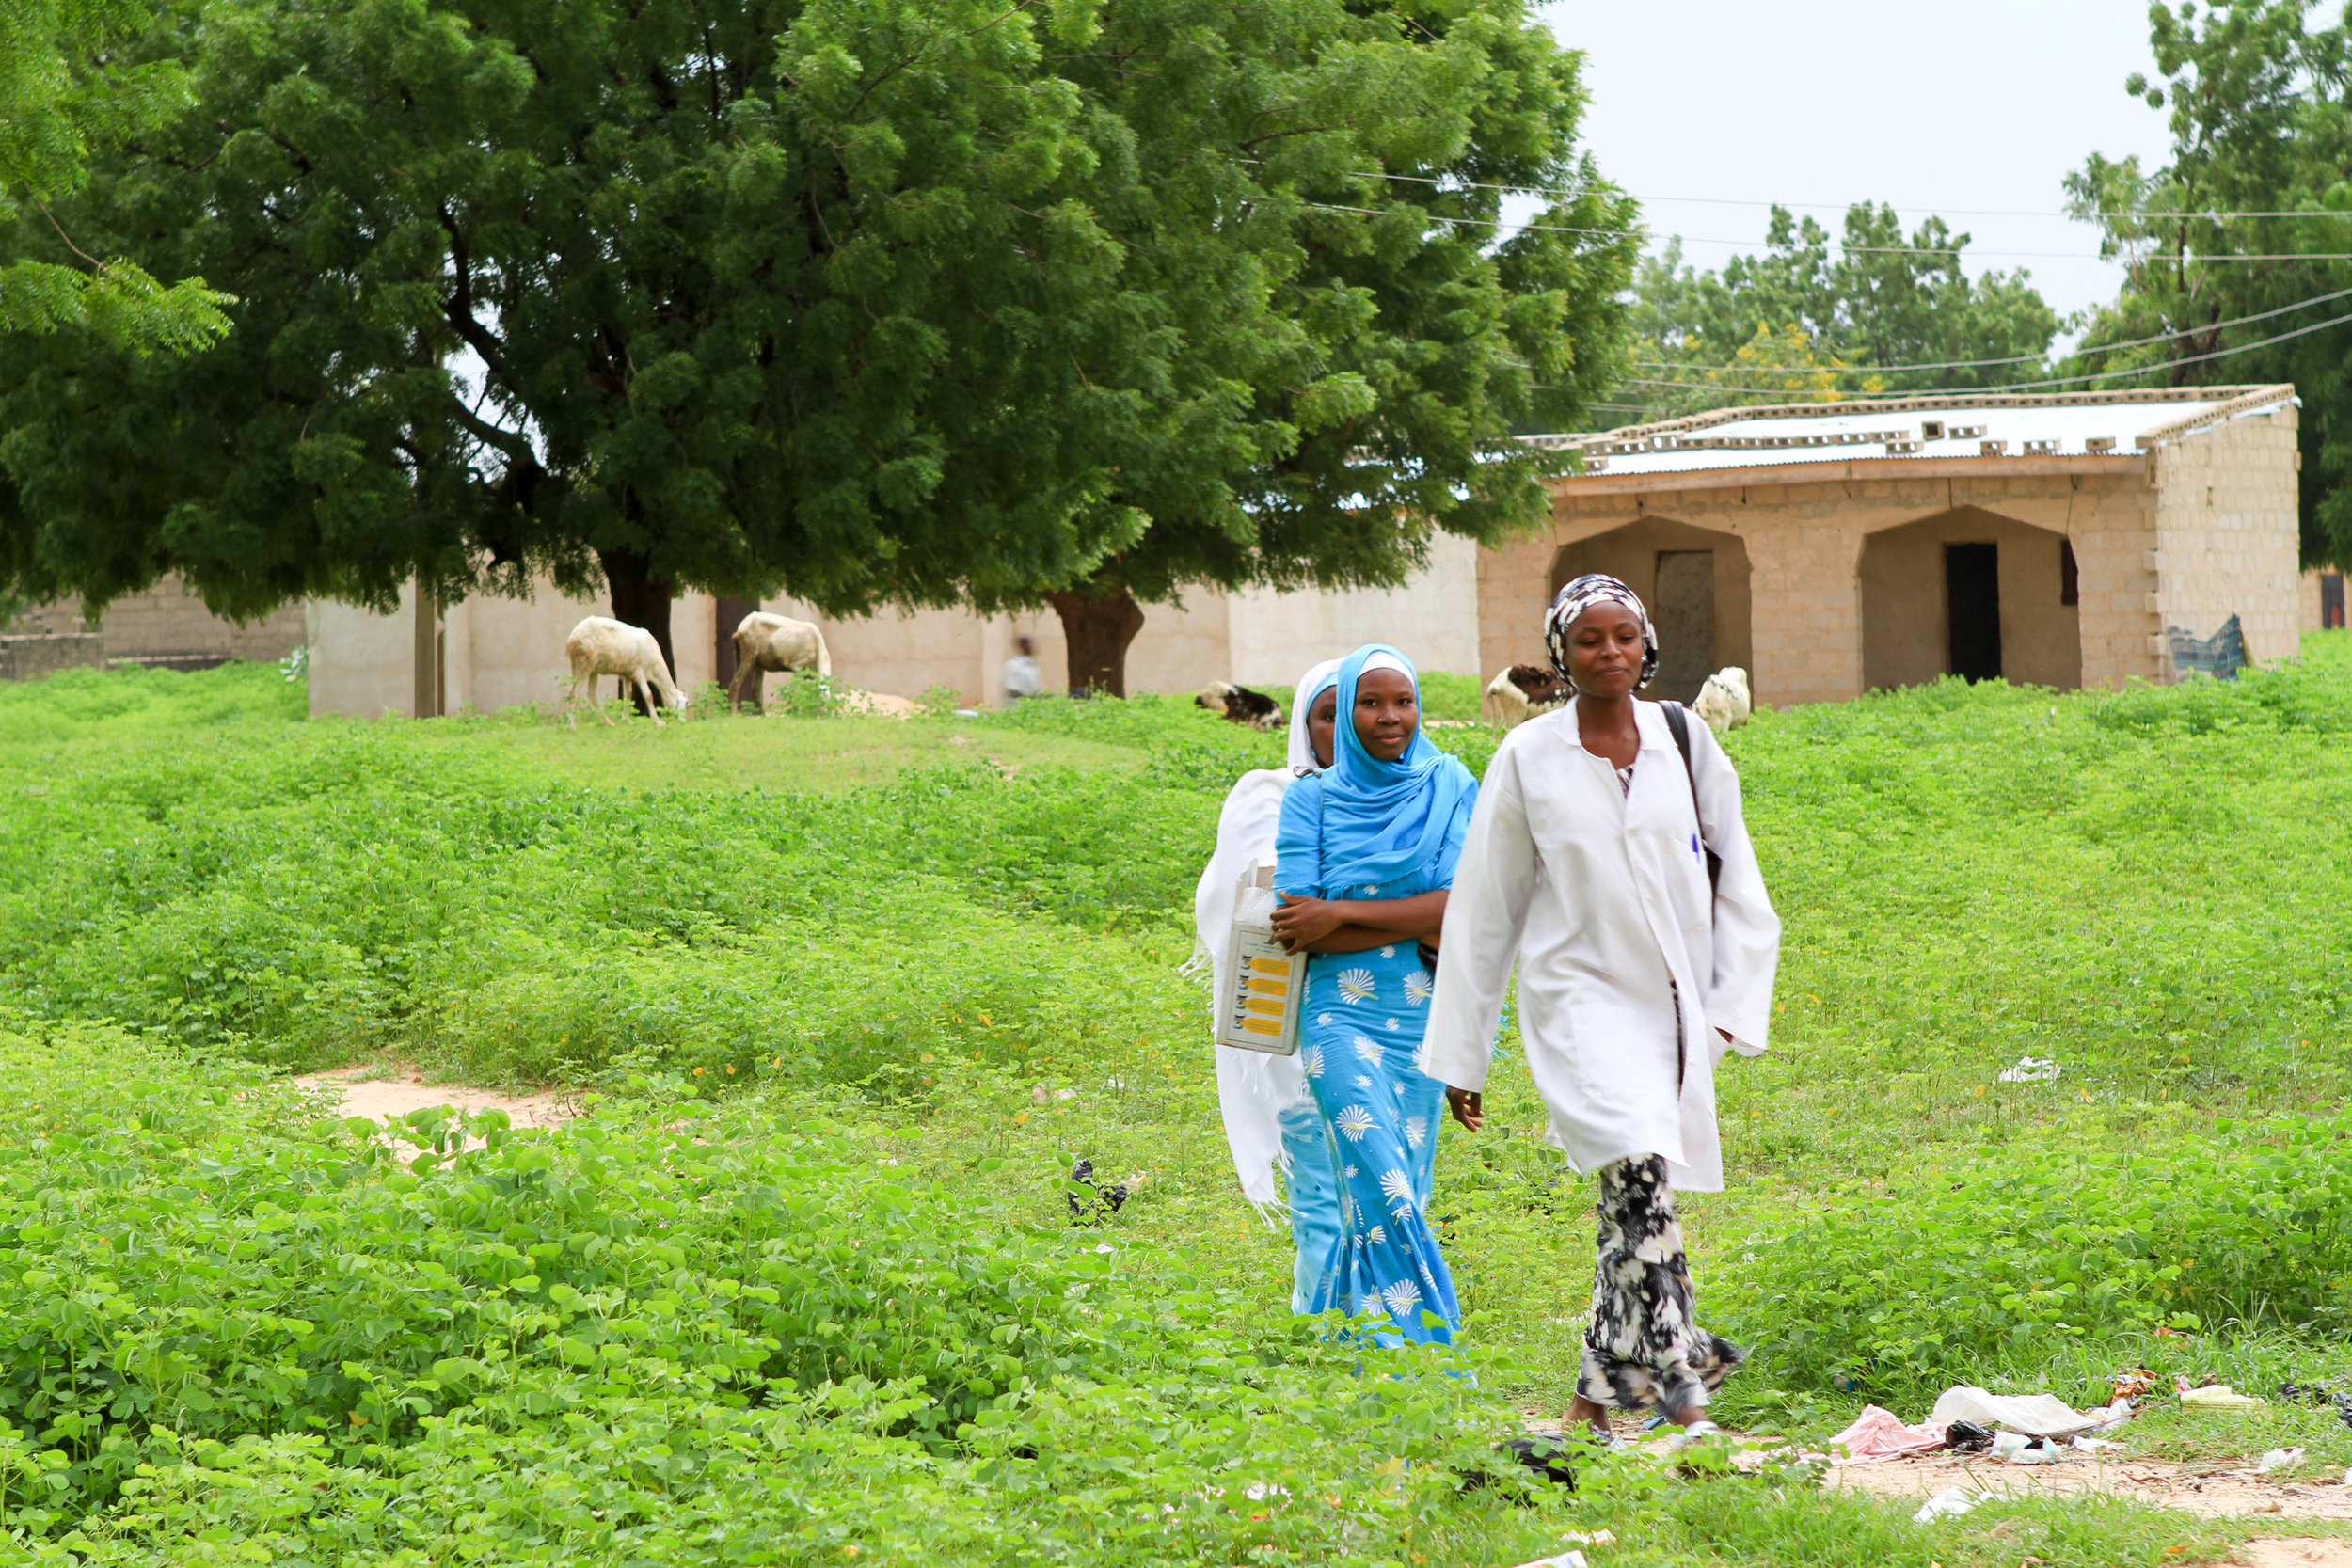 The health workers come back to the health post after a day's work.